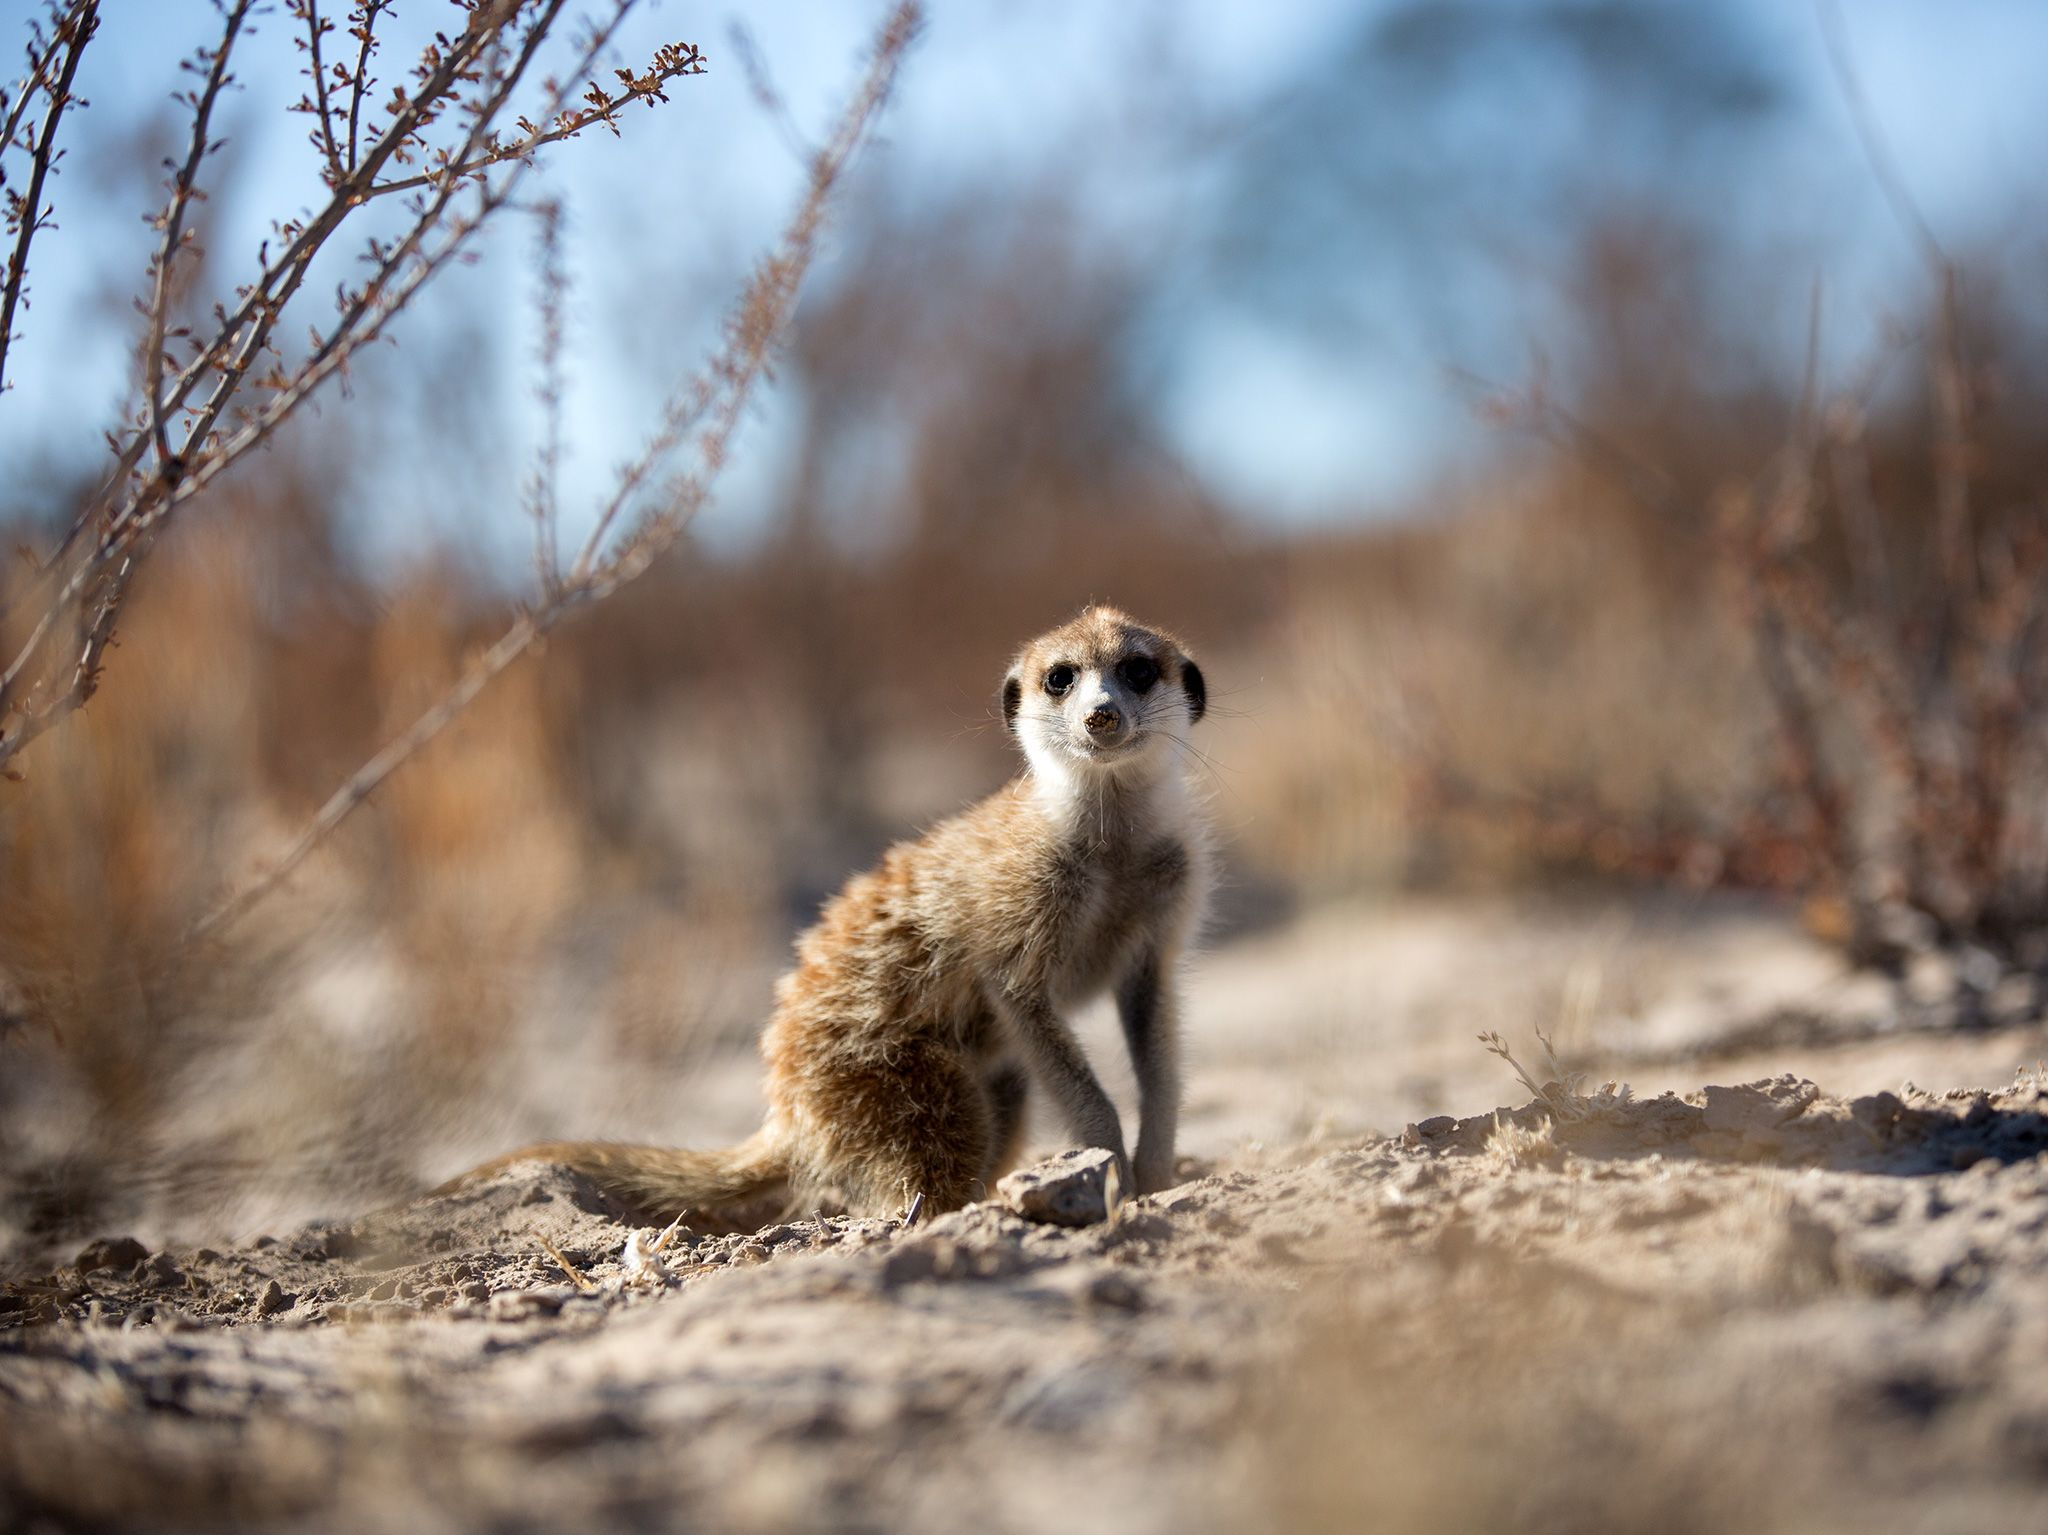 Portrait of a meerkat (Suricata suricatta) as it pauses in-between digging for grubs and insects... [Photo of the day - April 2019]